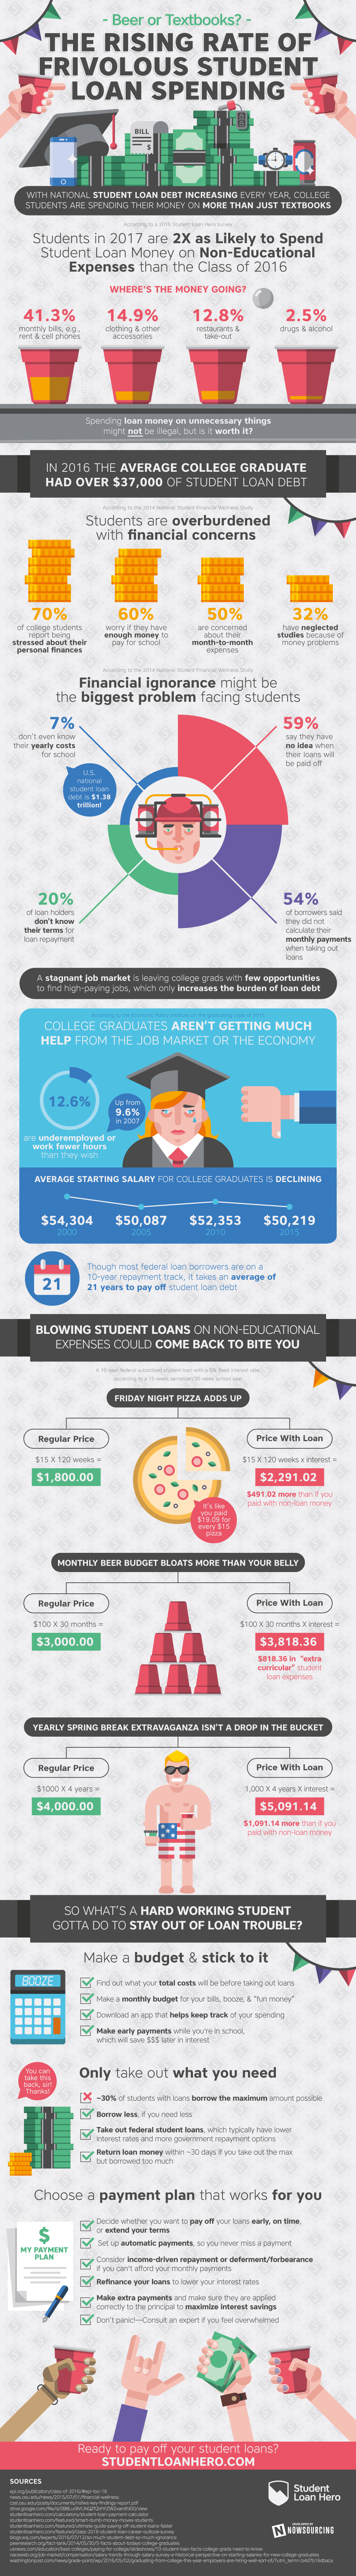 How Students Are Spending Their Loans Infographic